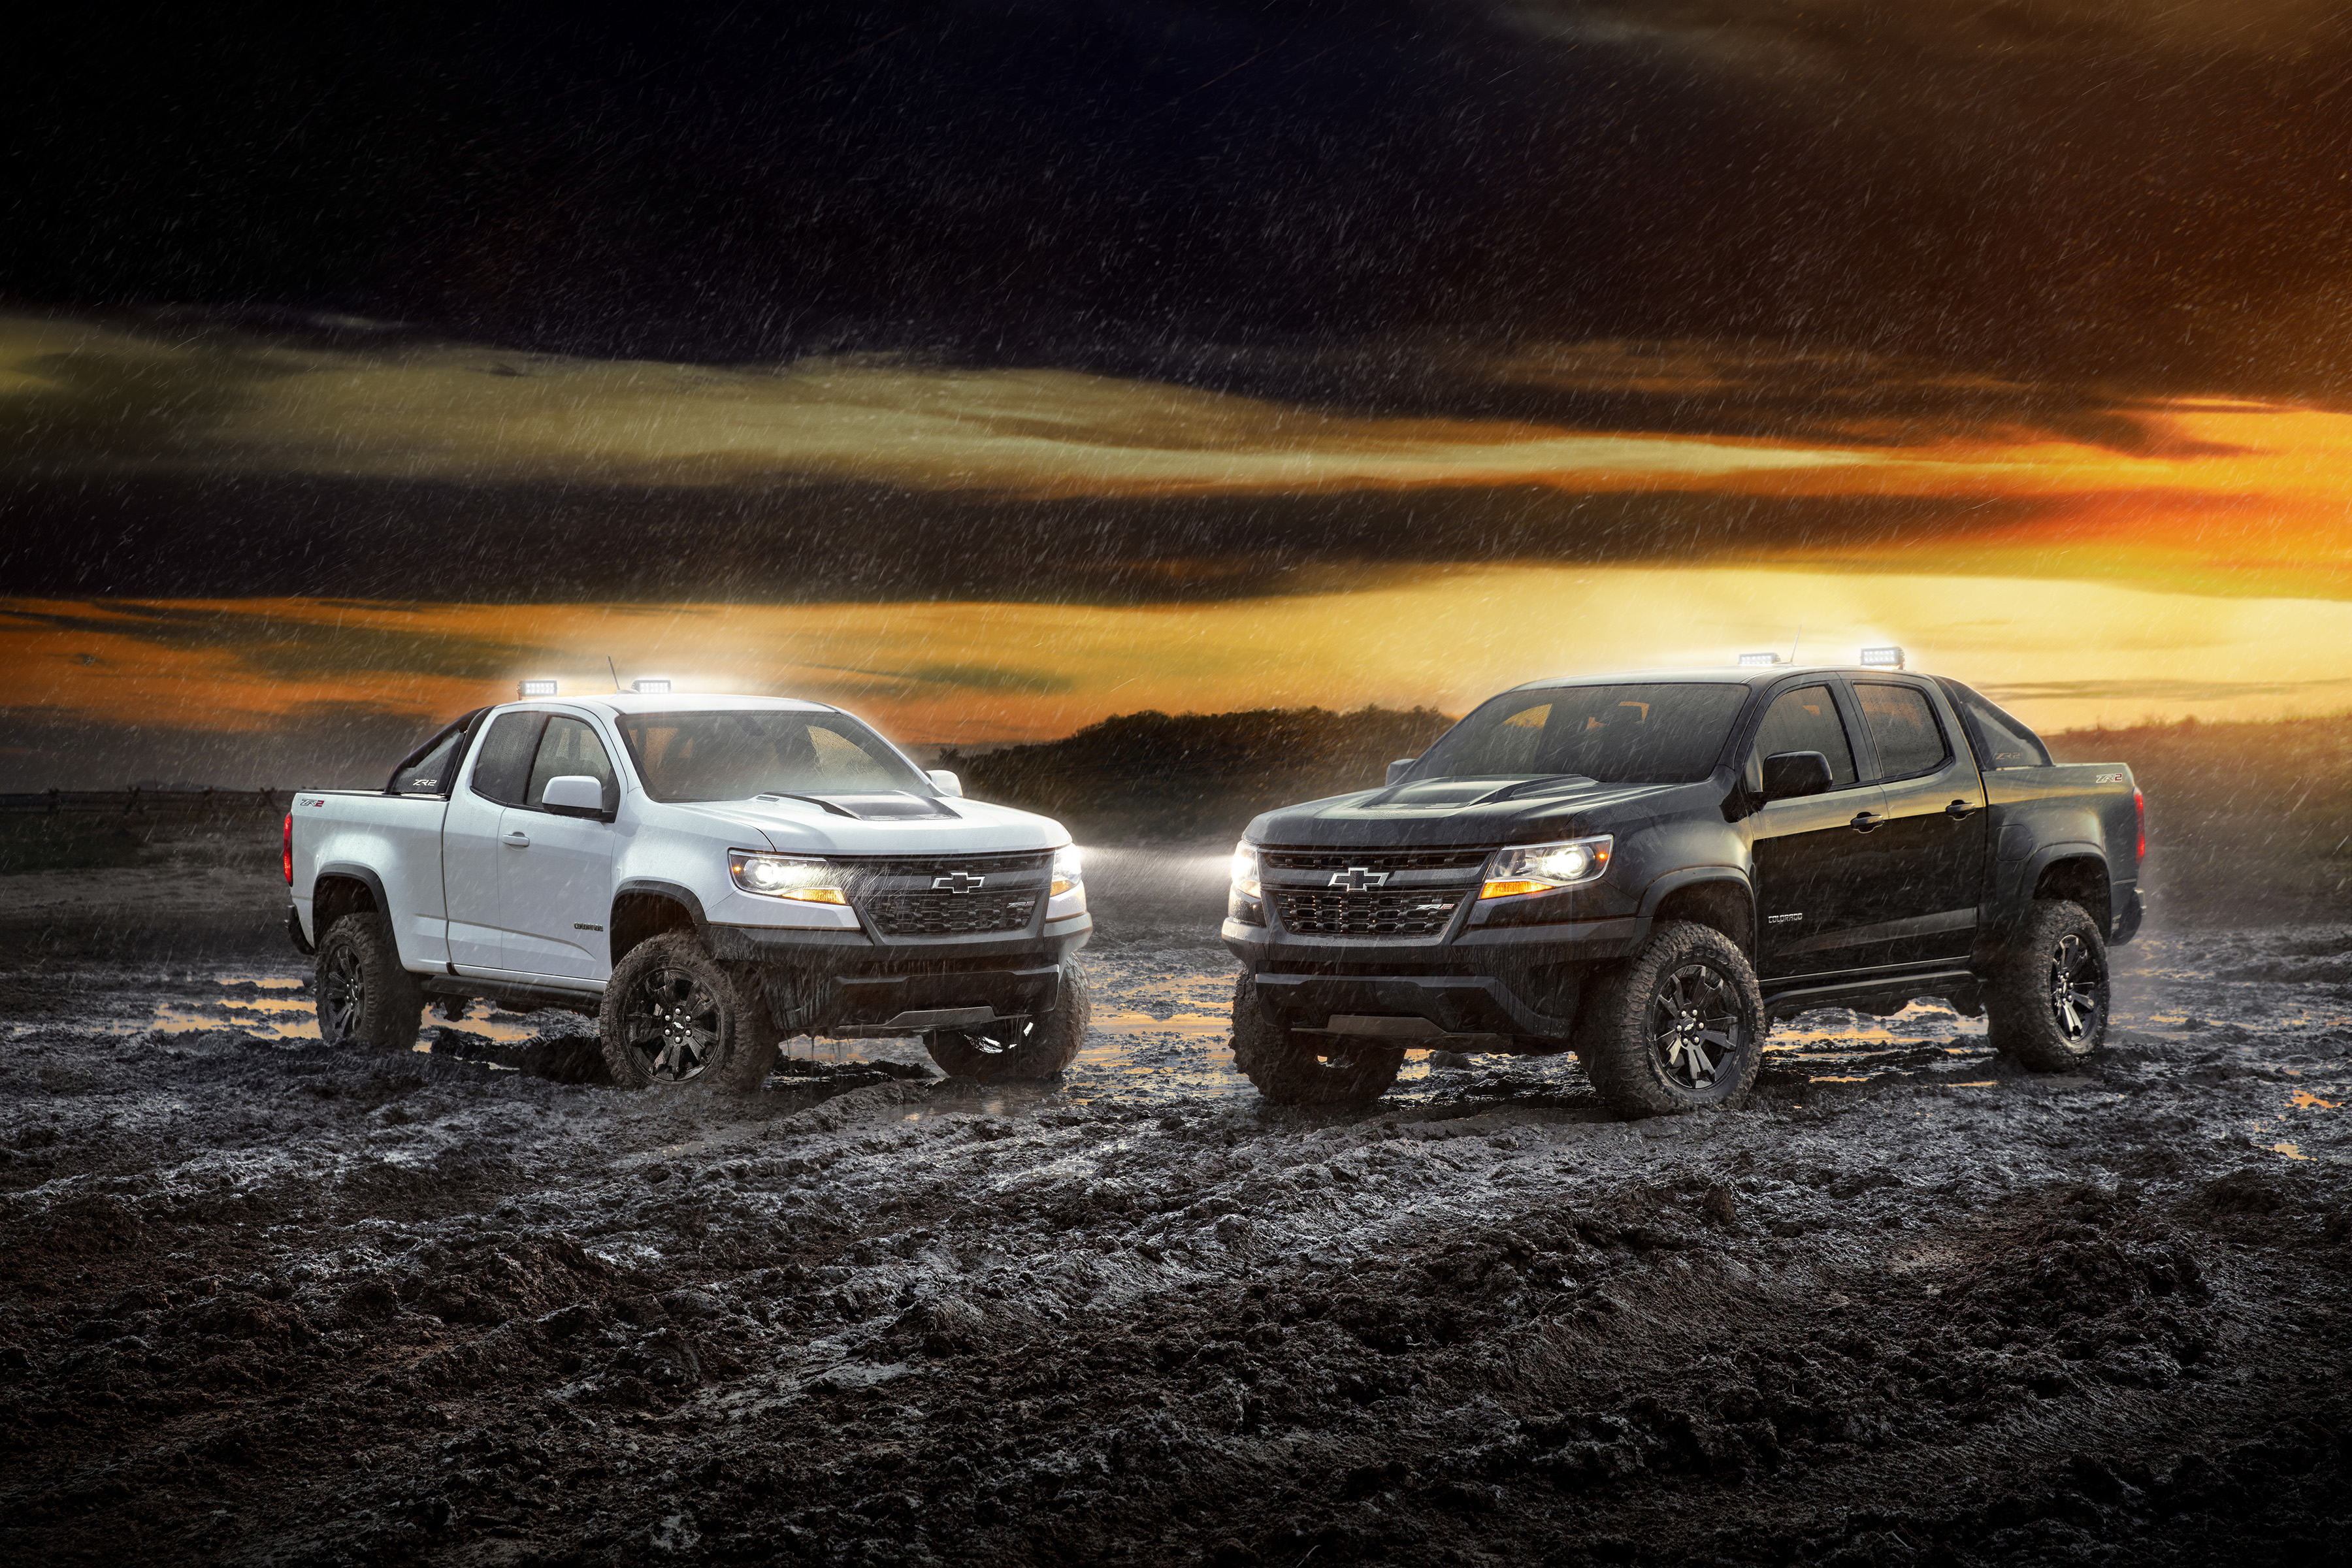 Zr2 Midnight And Dusk Editions Expand Choices In 2018 Chevrolet